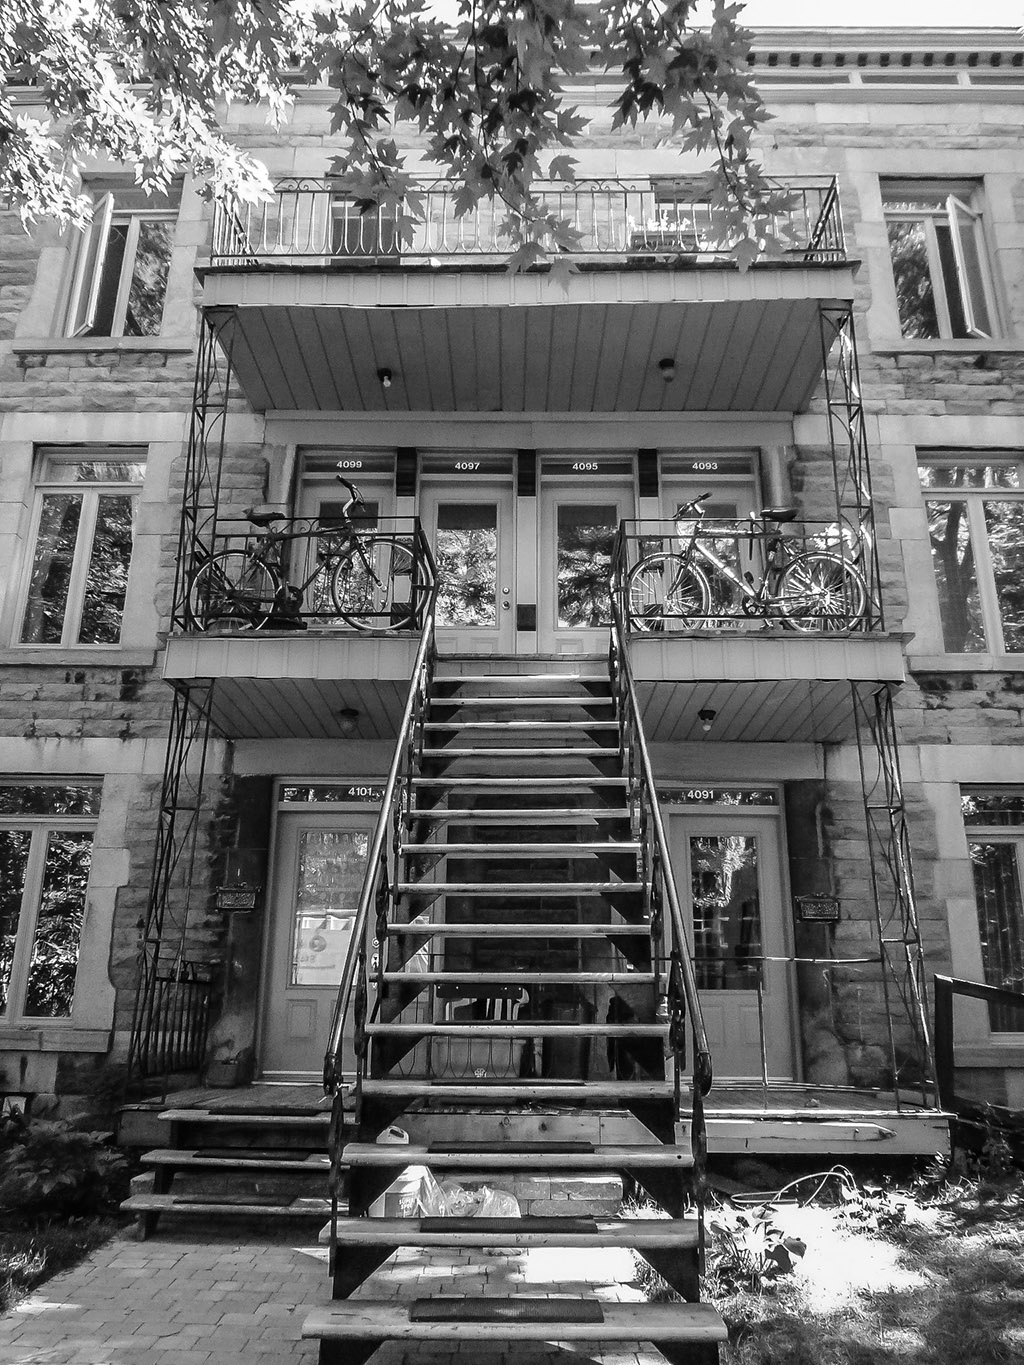 The quintessential Montreal apartment entrance. Photo by Chris Bruntlett